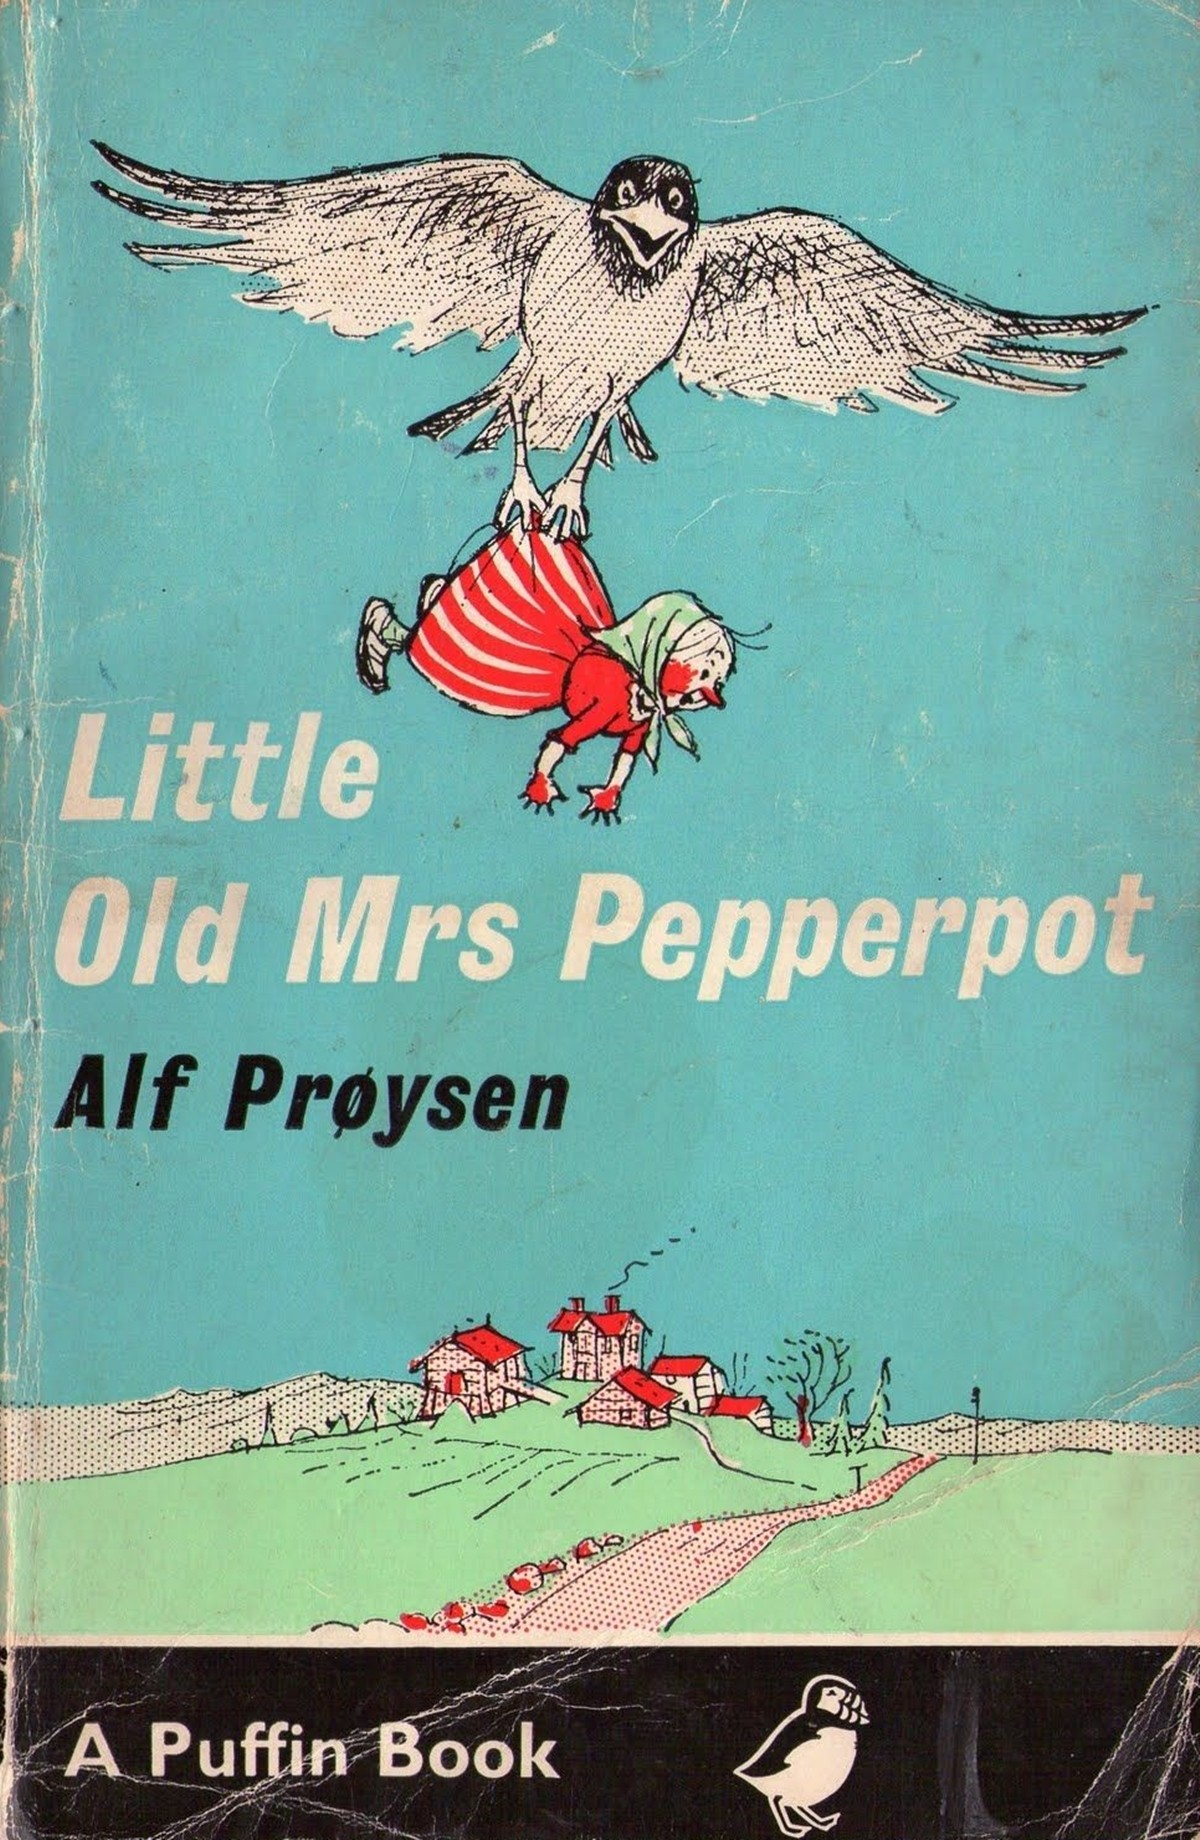 8 17 12 More Childhood Books You've Probably Forgotten About